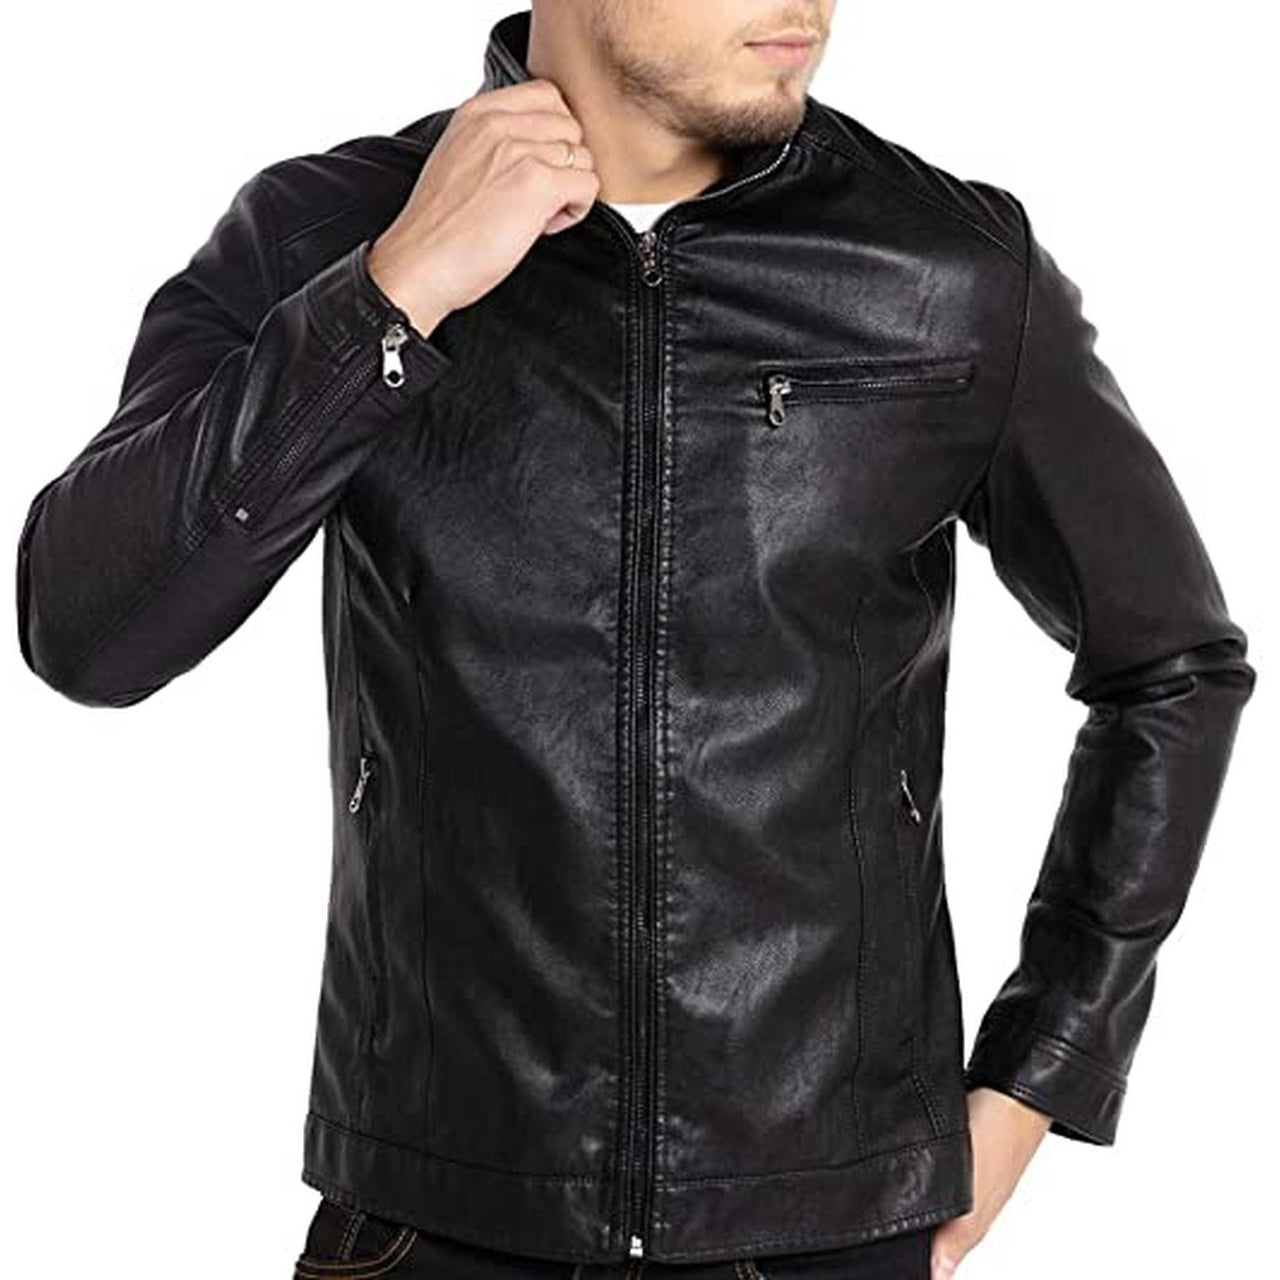 Men Stand Collar Leather Motorcycle Jacket Outwear Black - Leather Jacket